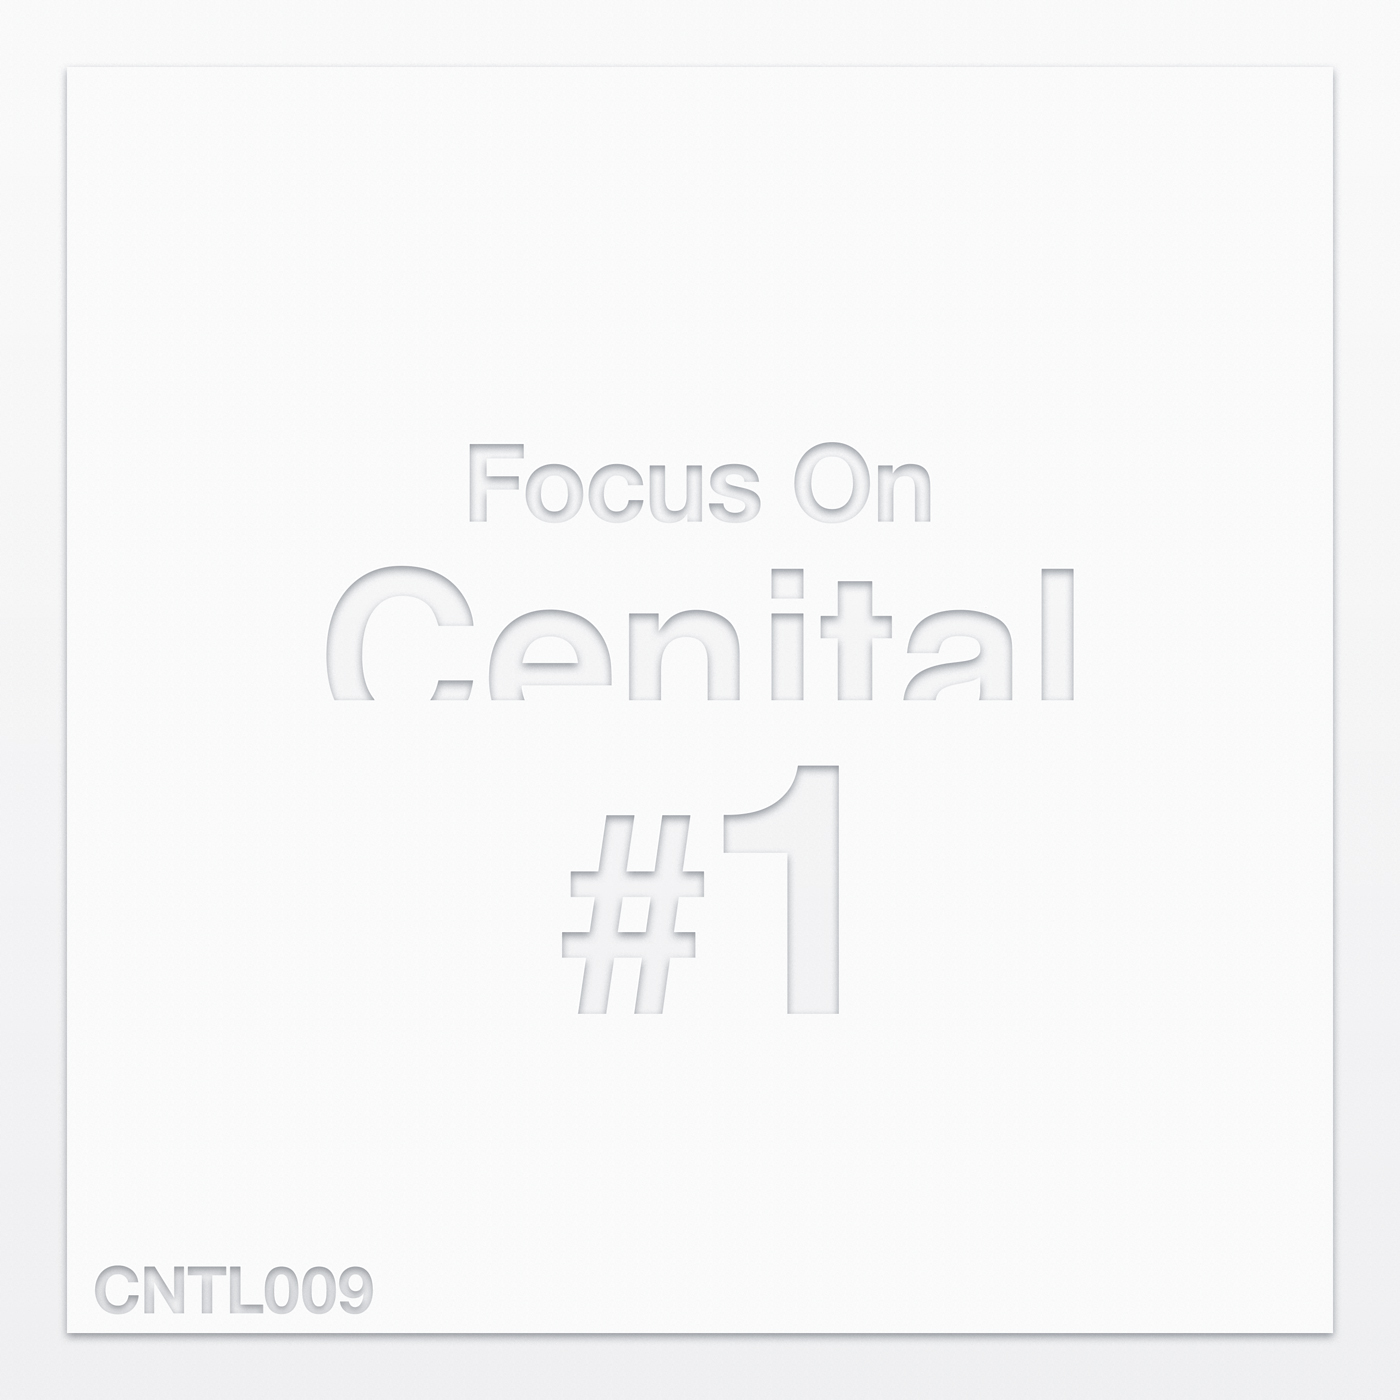 Focus On Cenital